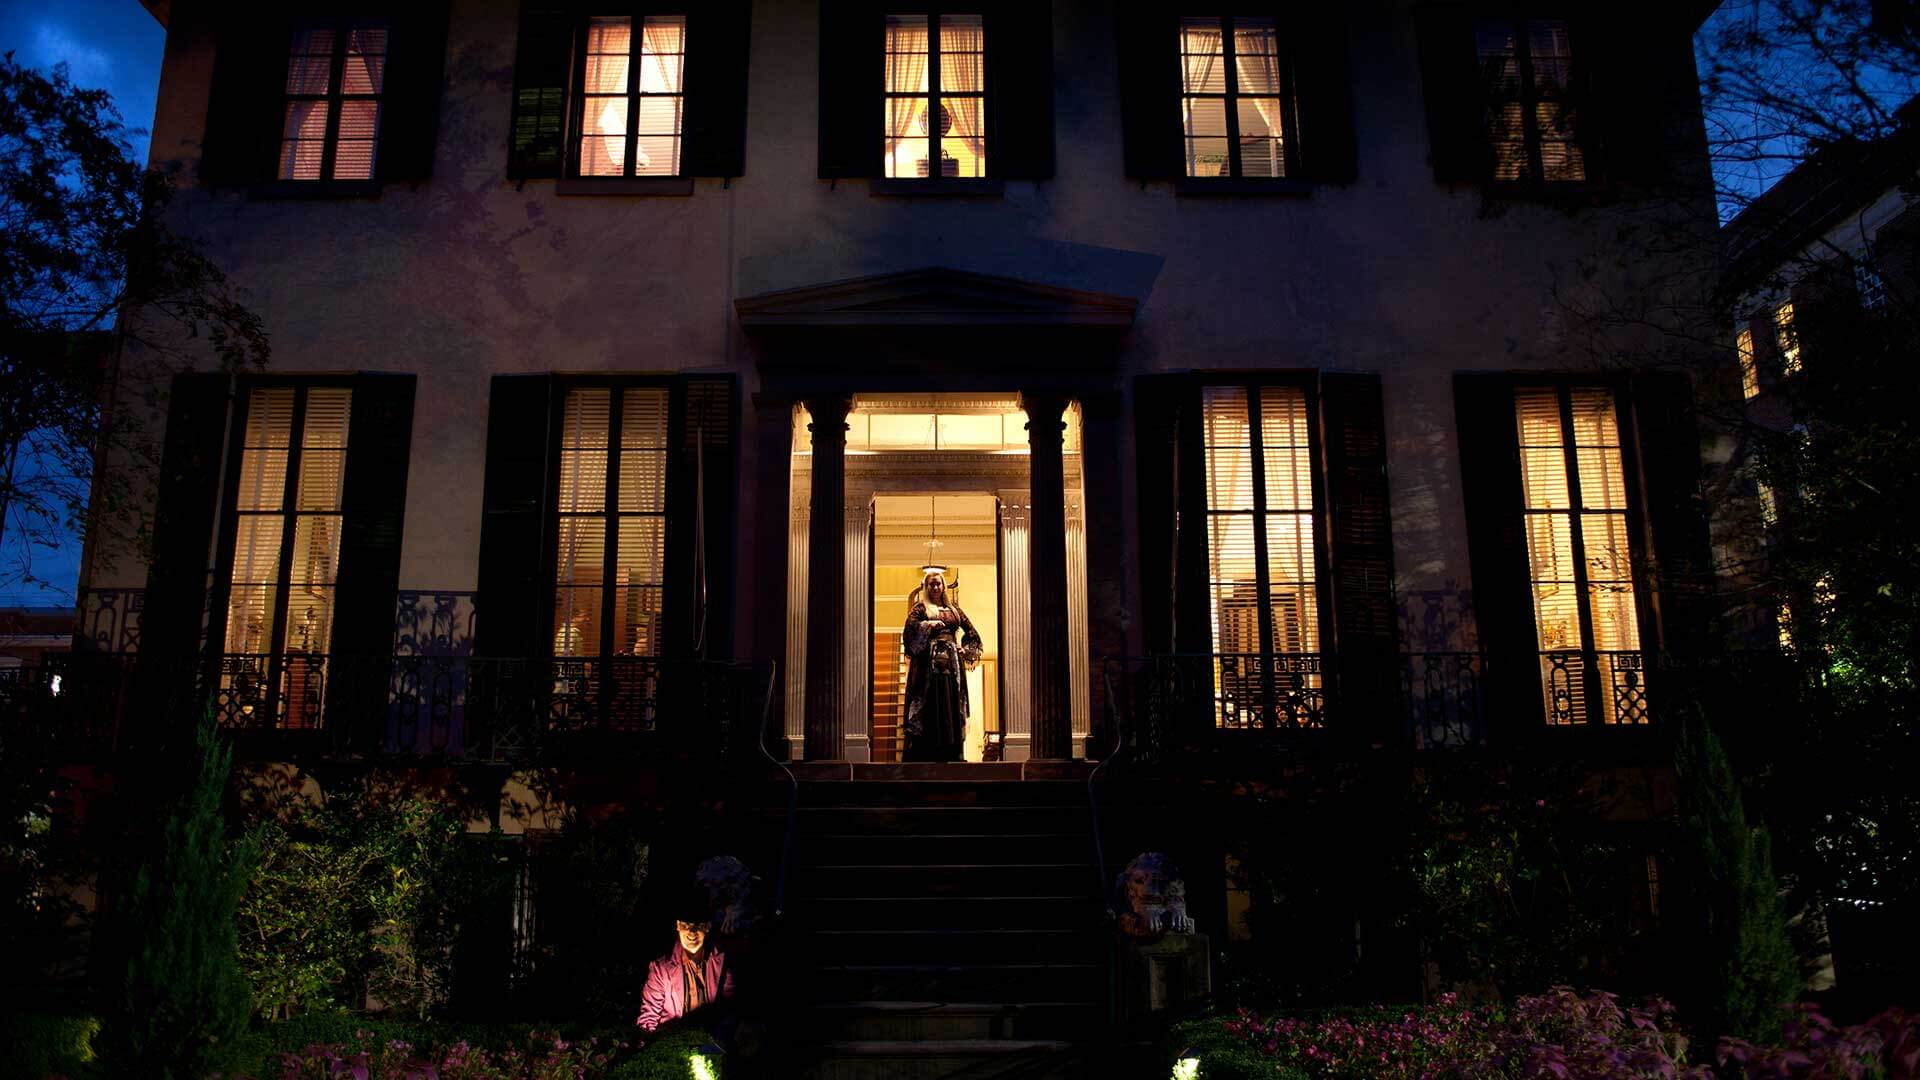 andrew low house at night with haunted tour guide at the door